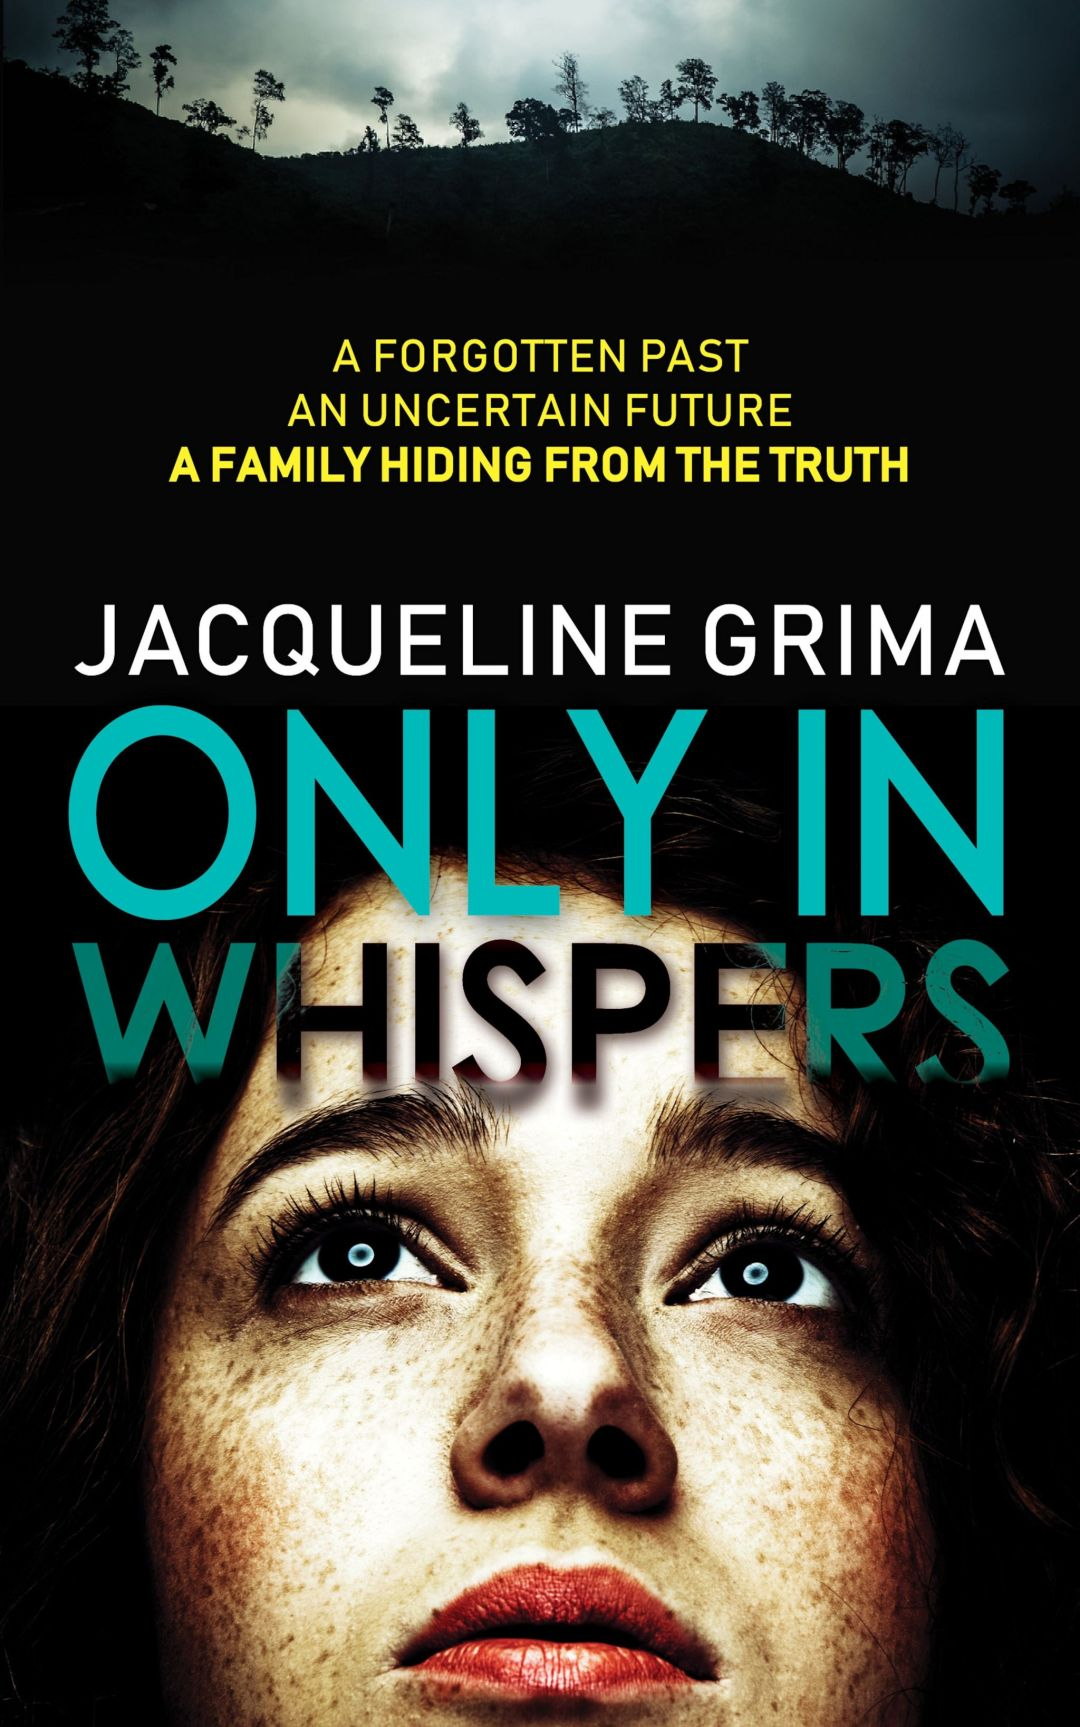 #BookReview of Only in Whispers by Jacqueline Grima @GrimaJgrima @BooksManatee @Tr4cyF3nt0n